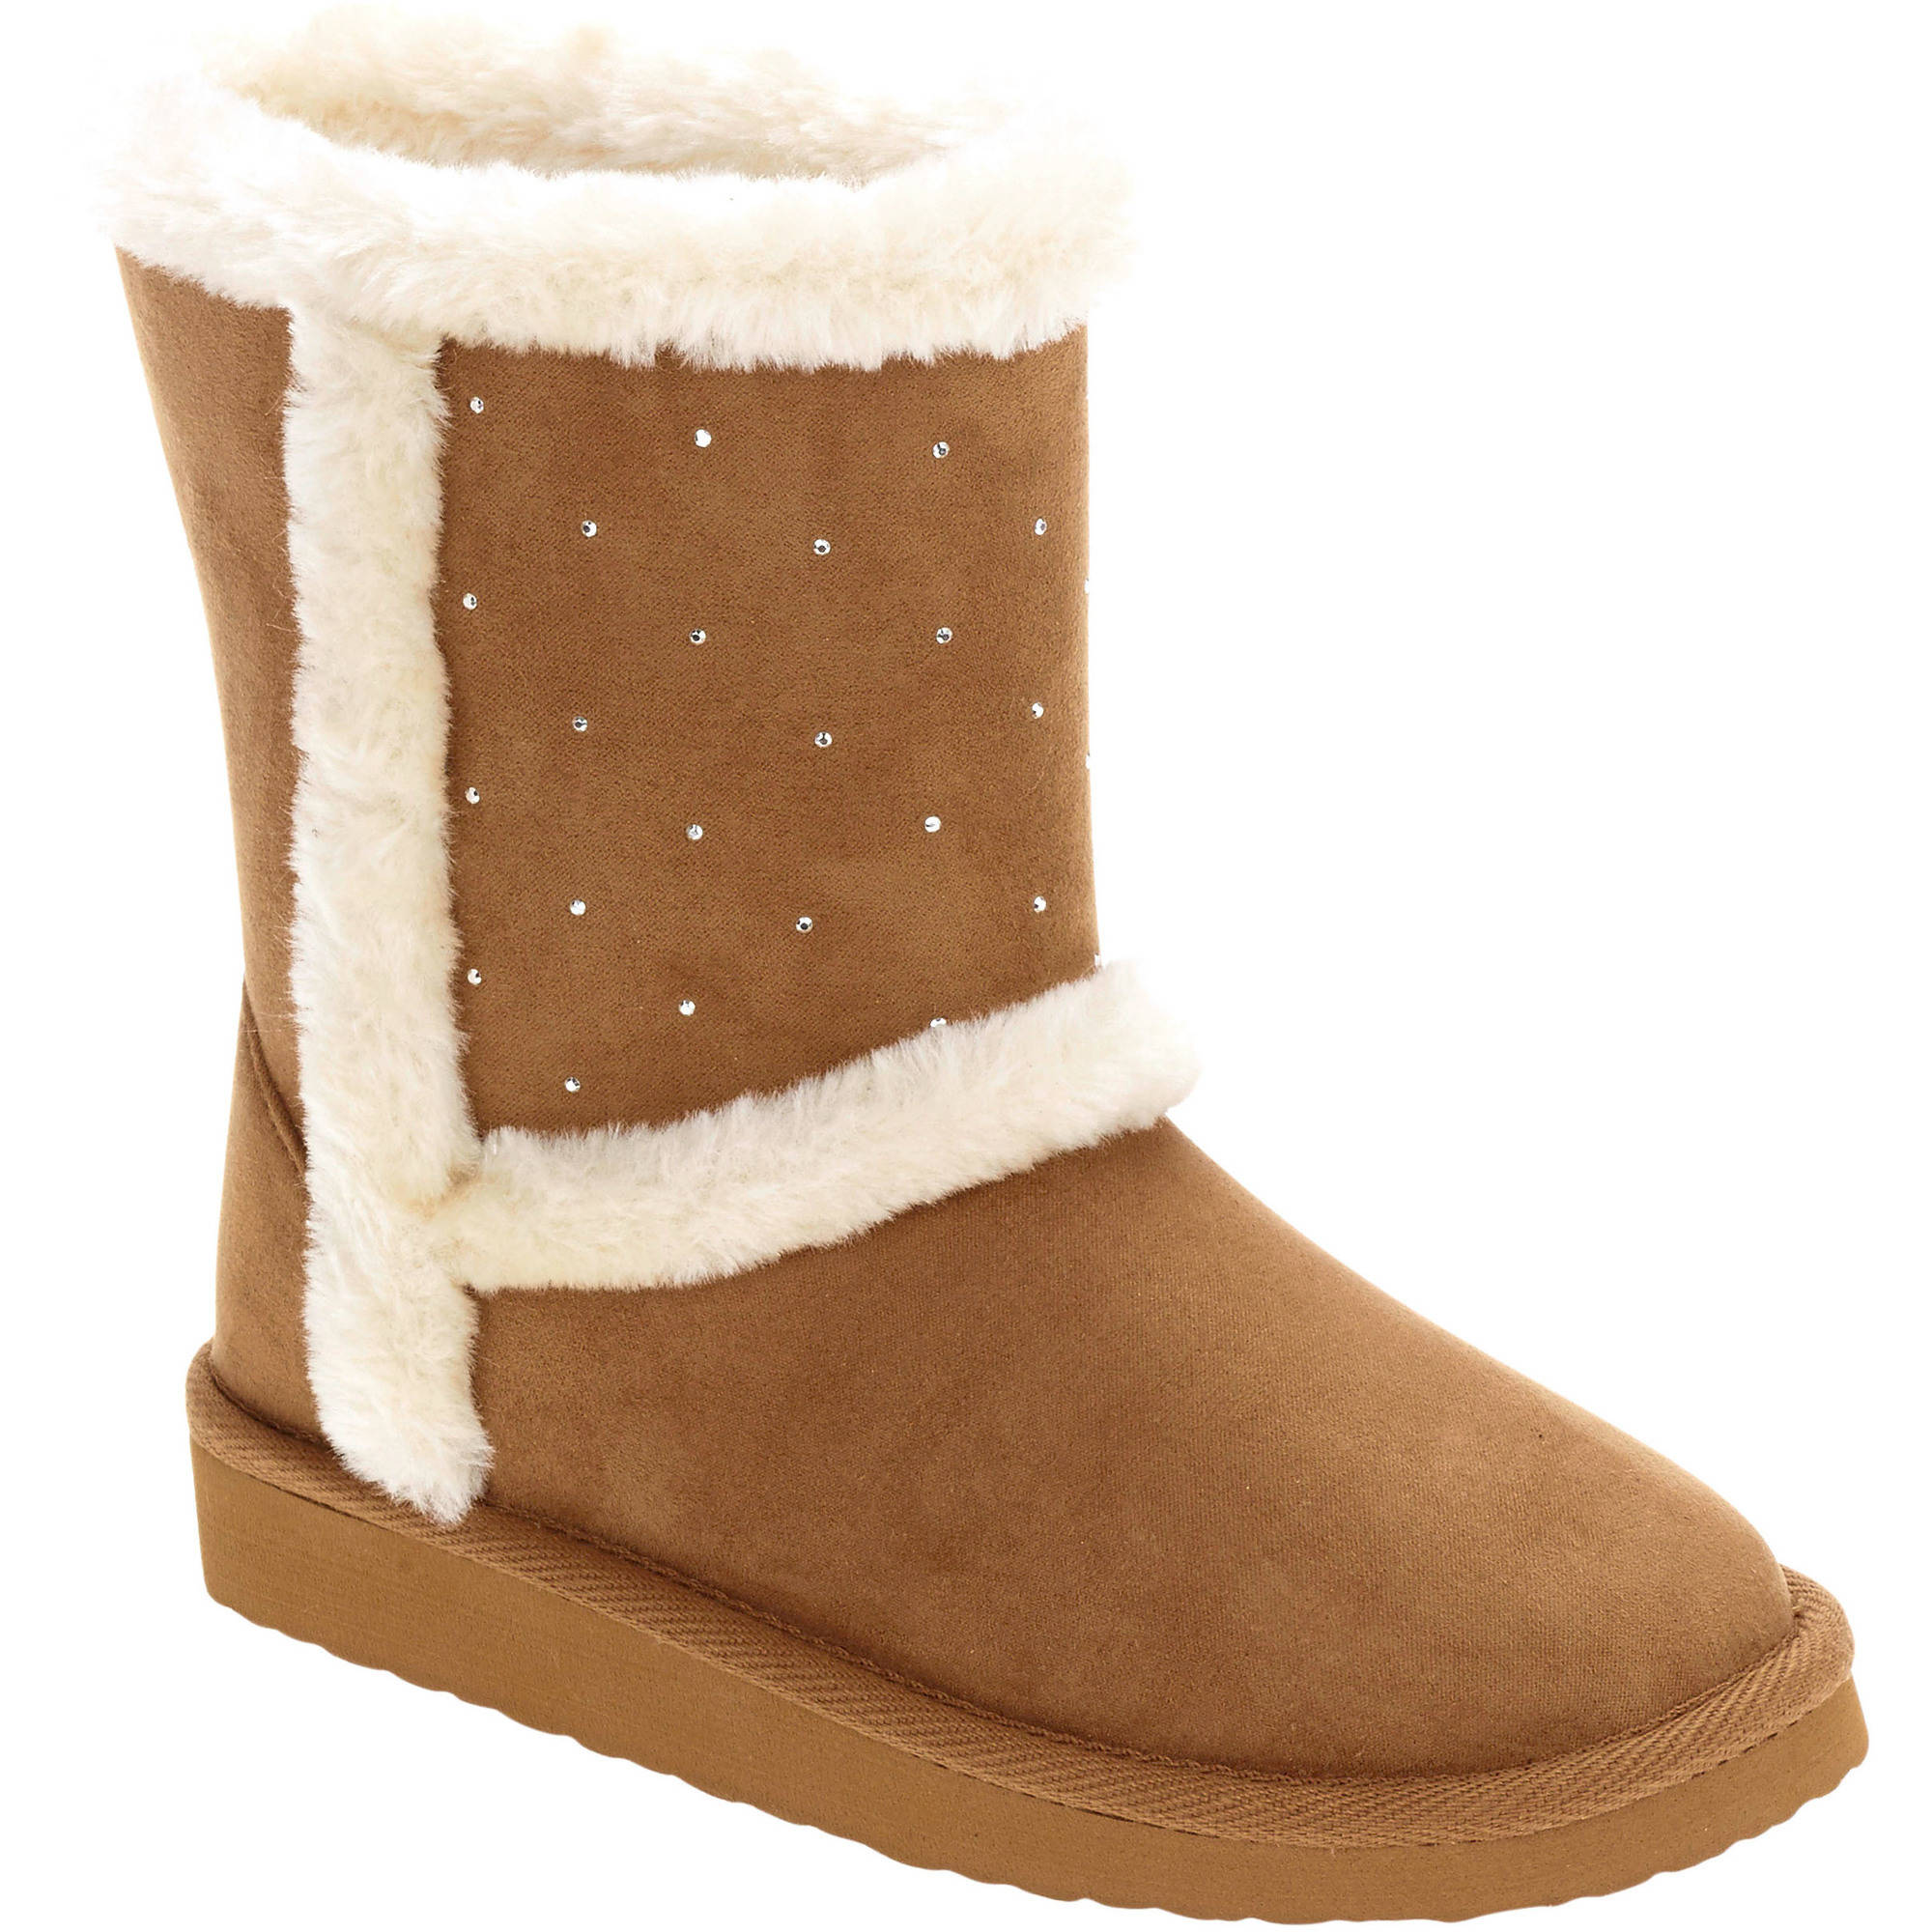 Faded Glory Girls' Embellished Shearling Boot